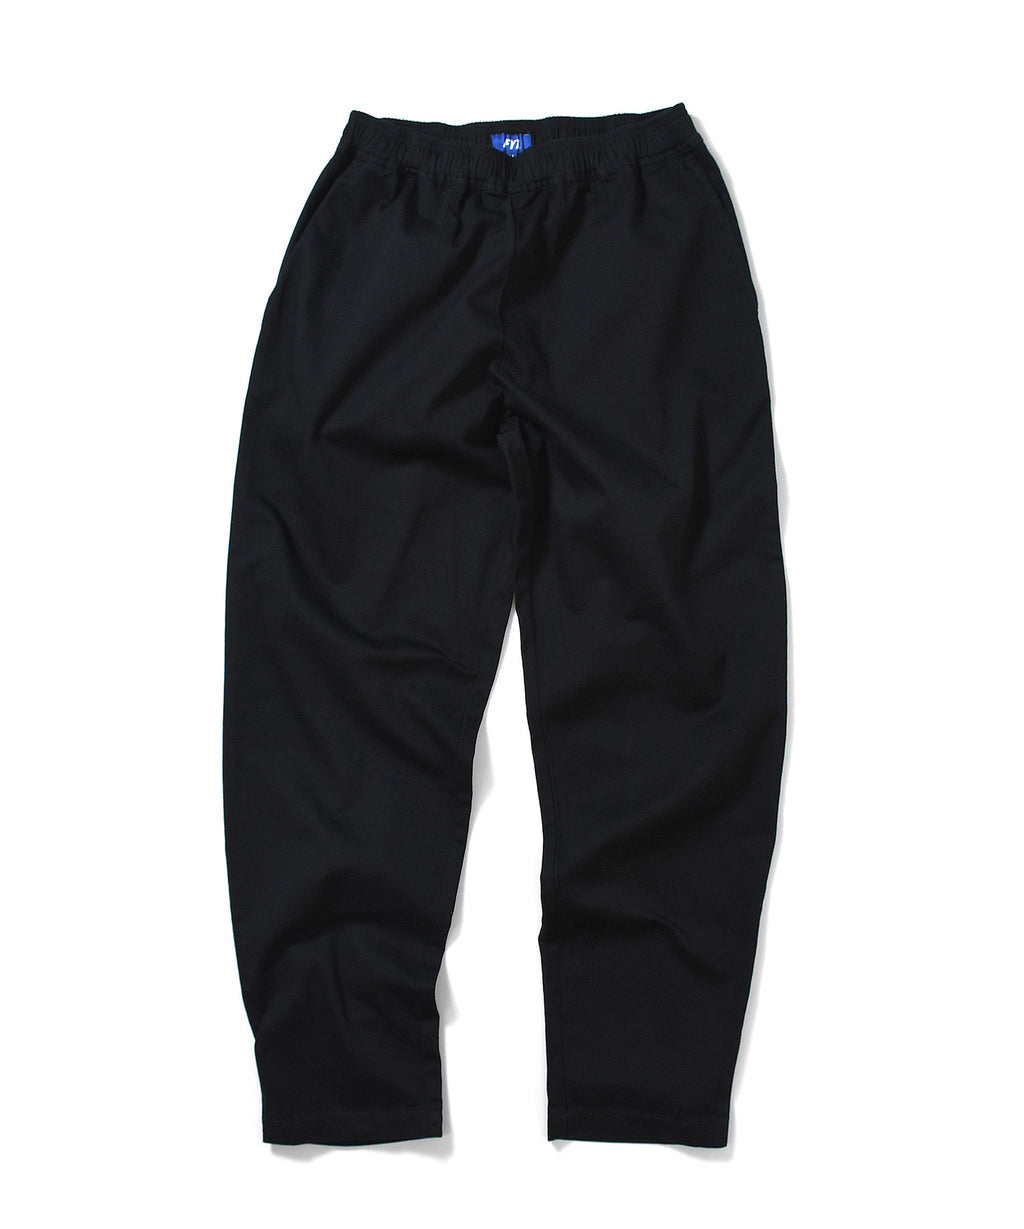 RELAXED FIT CHEF PANTS BLACK LA201204